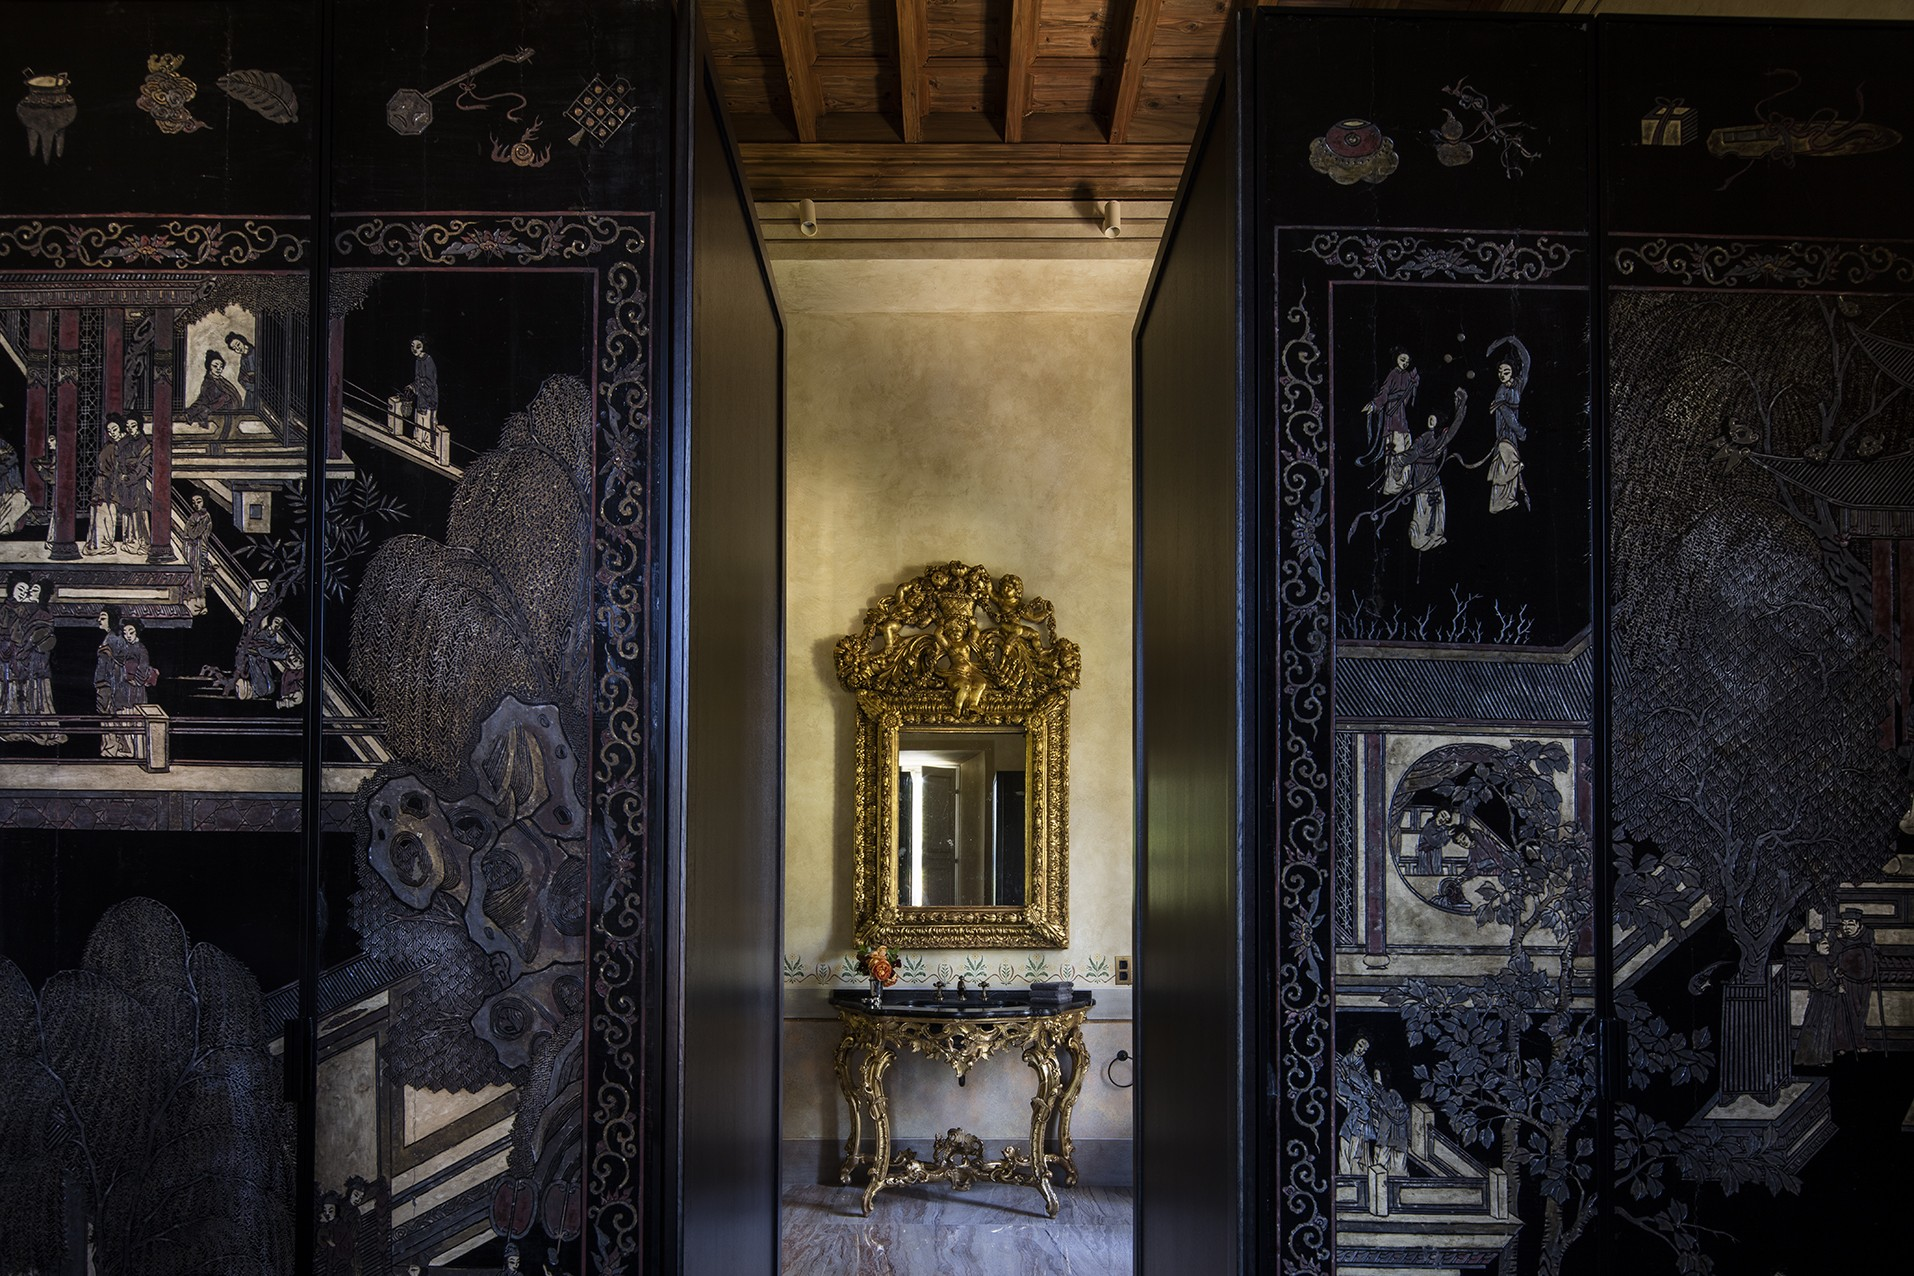 Villa Balbiano best luxury property available for rental on lake Como stunning bathroom marble floor antique chinese screens coromandel lacquer 22000VB int